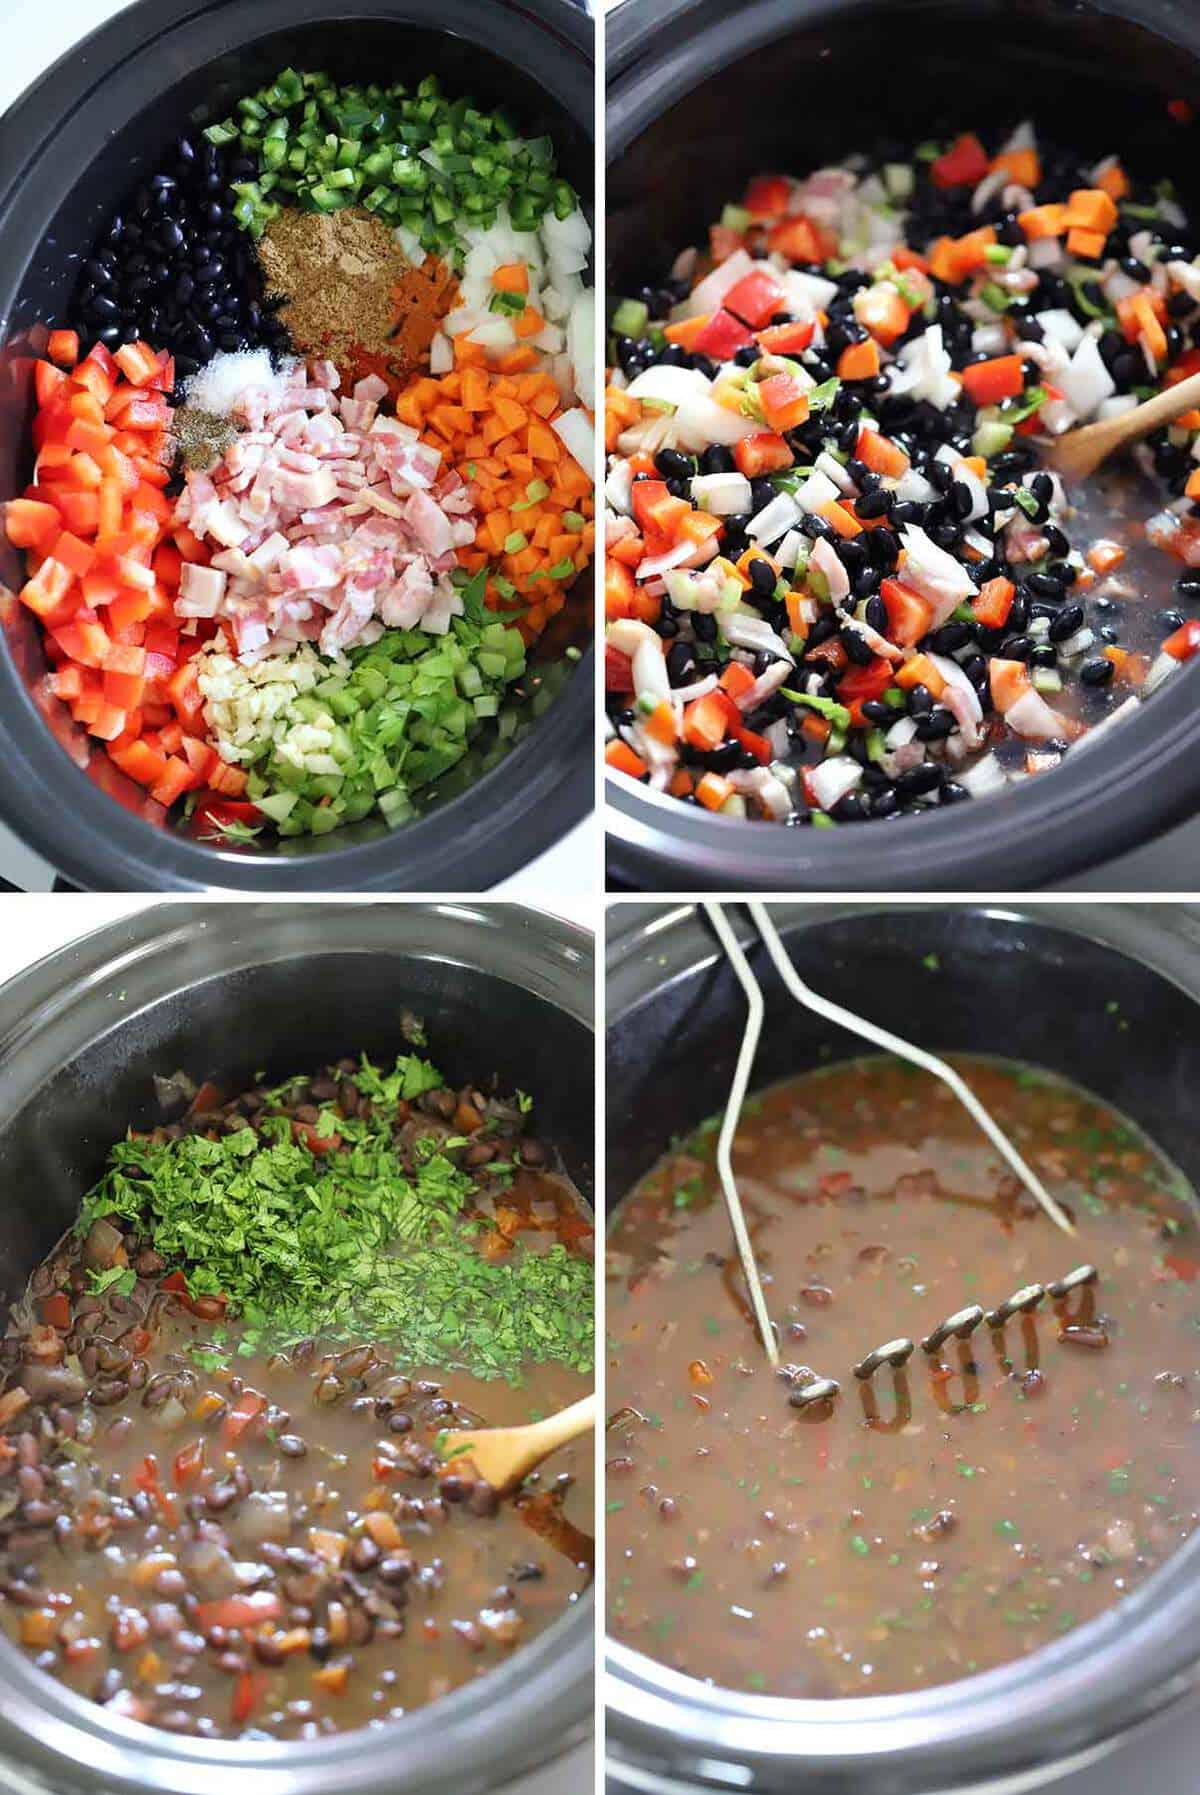 A photo collage showing the ingredients for slow cooker black bean soup before and after cooking.